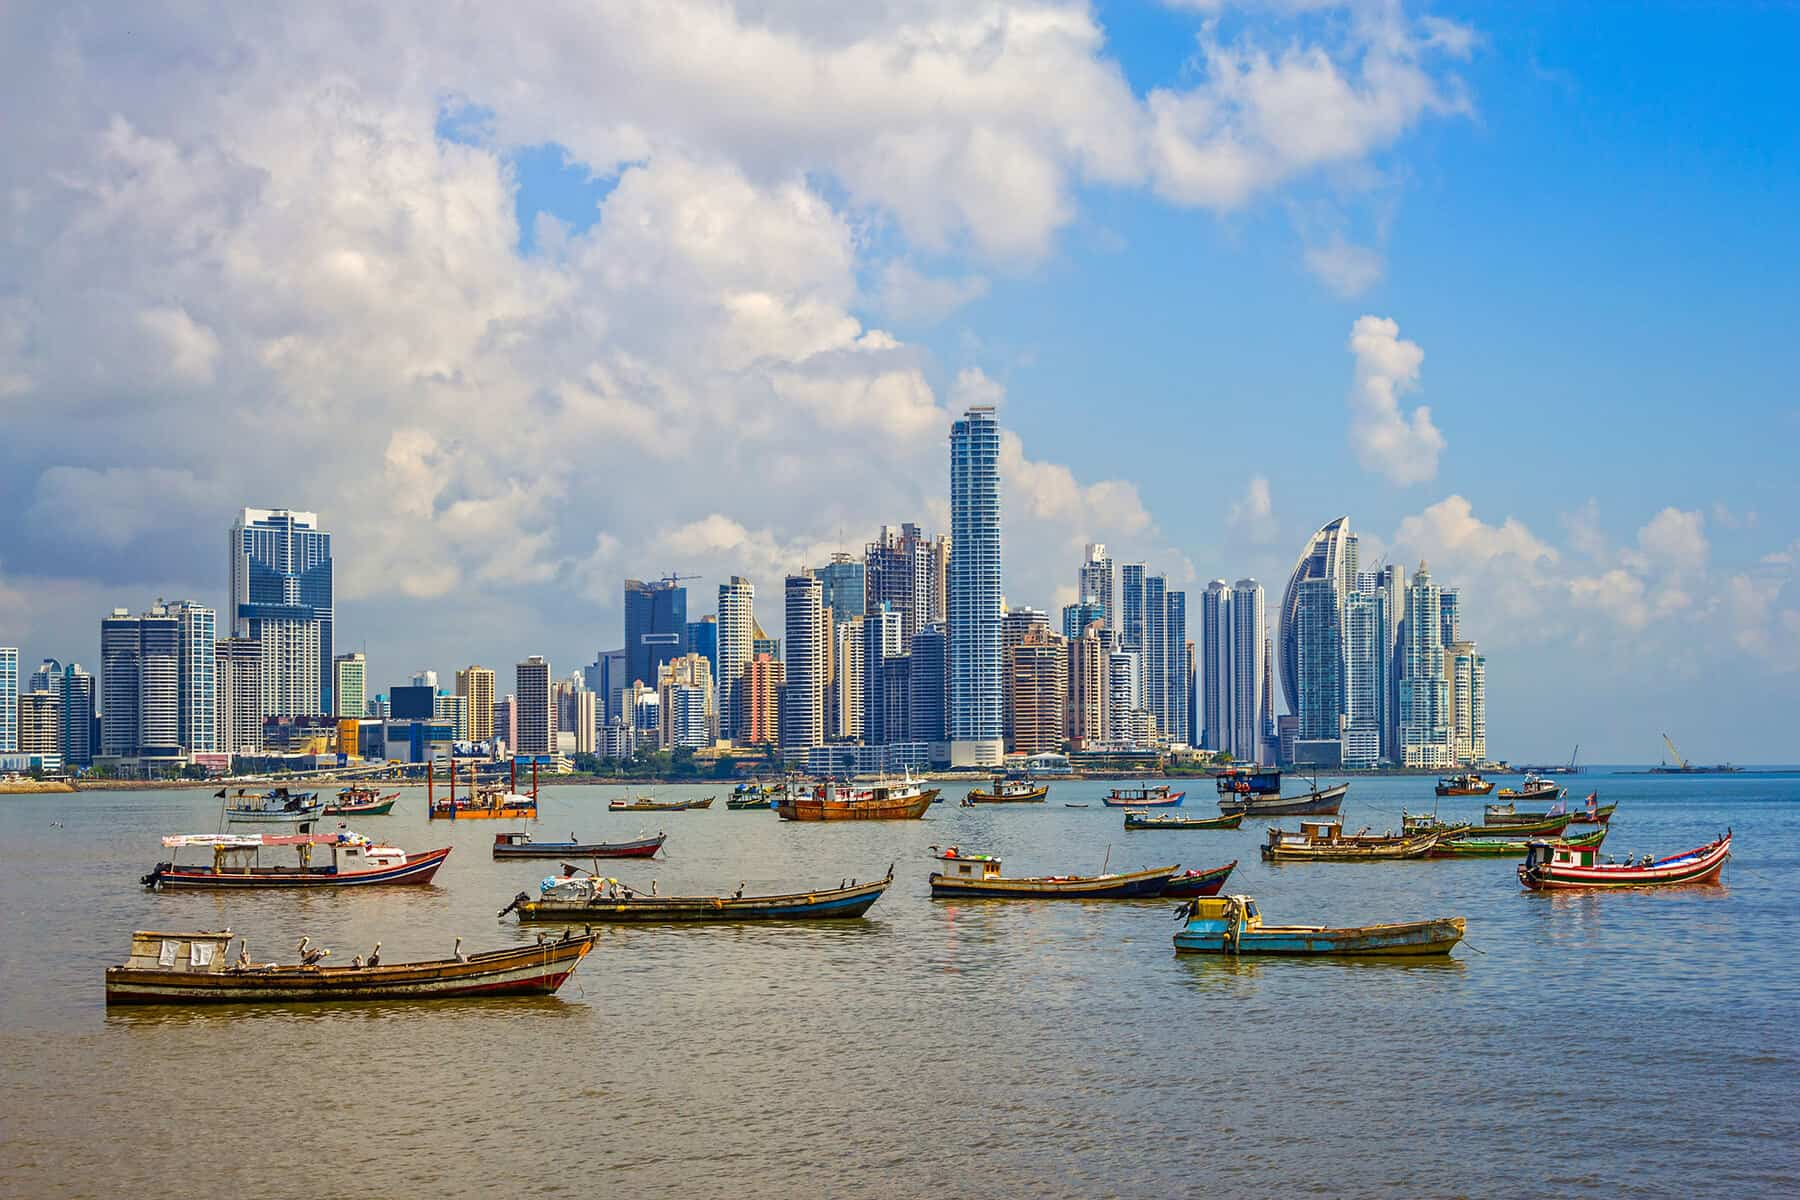 Panama continues to advance as regional leader in disaster risk reduction